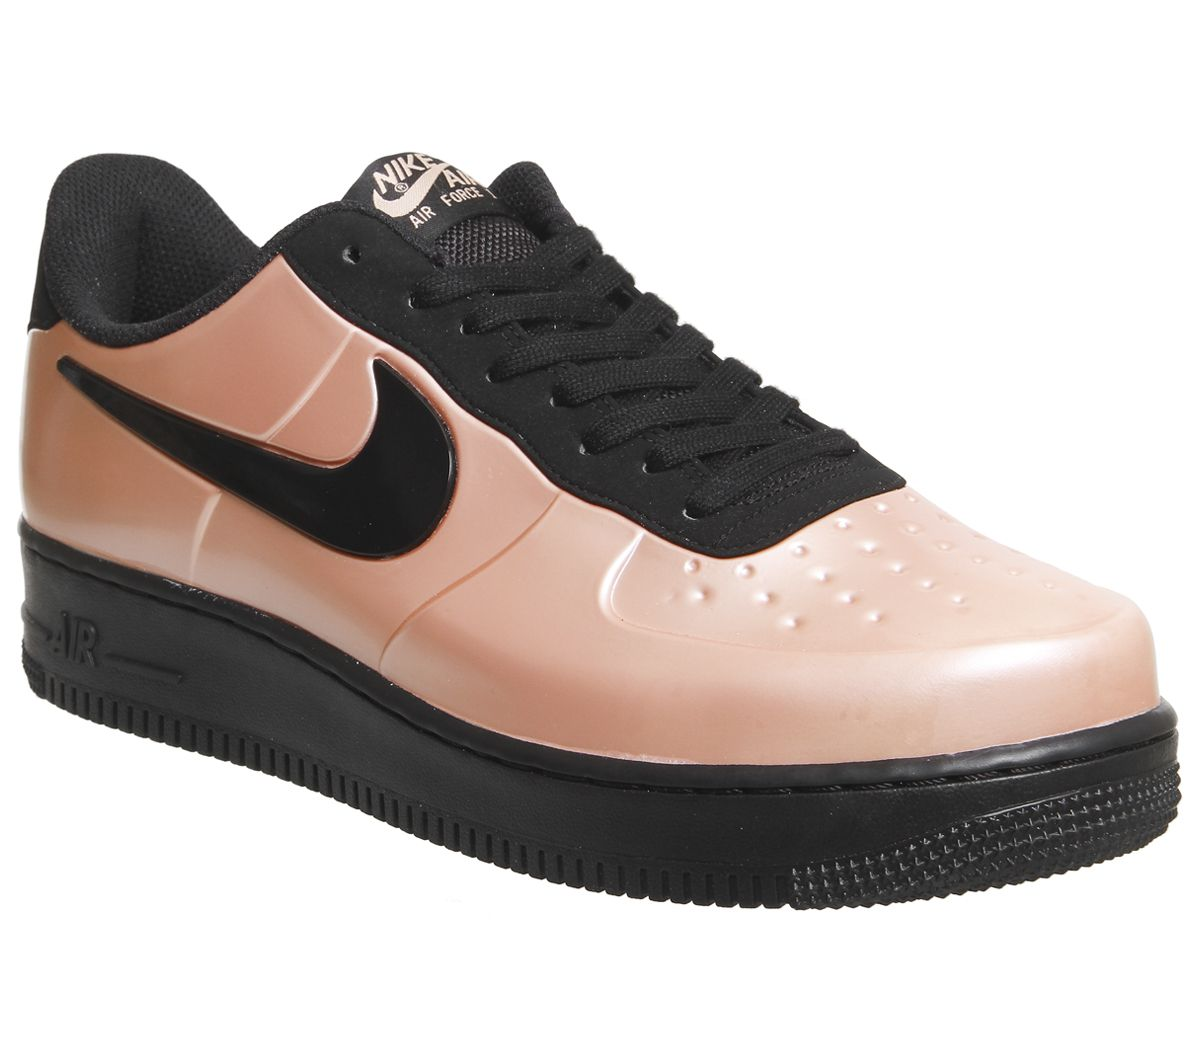 buy popular 3ac39 f976a Air Force 1 Foamposite Pro Trainers